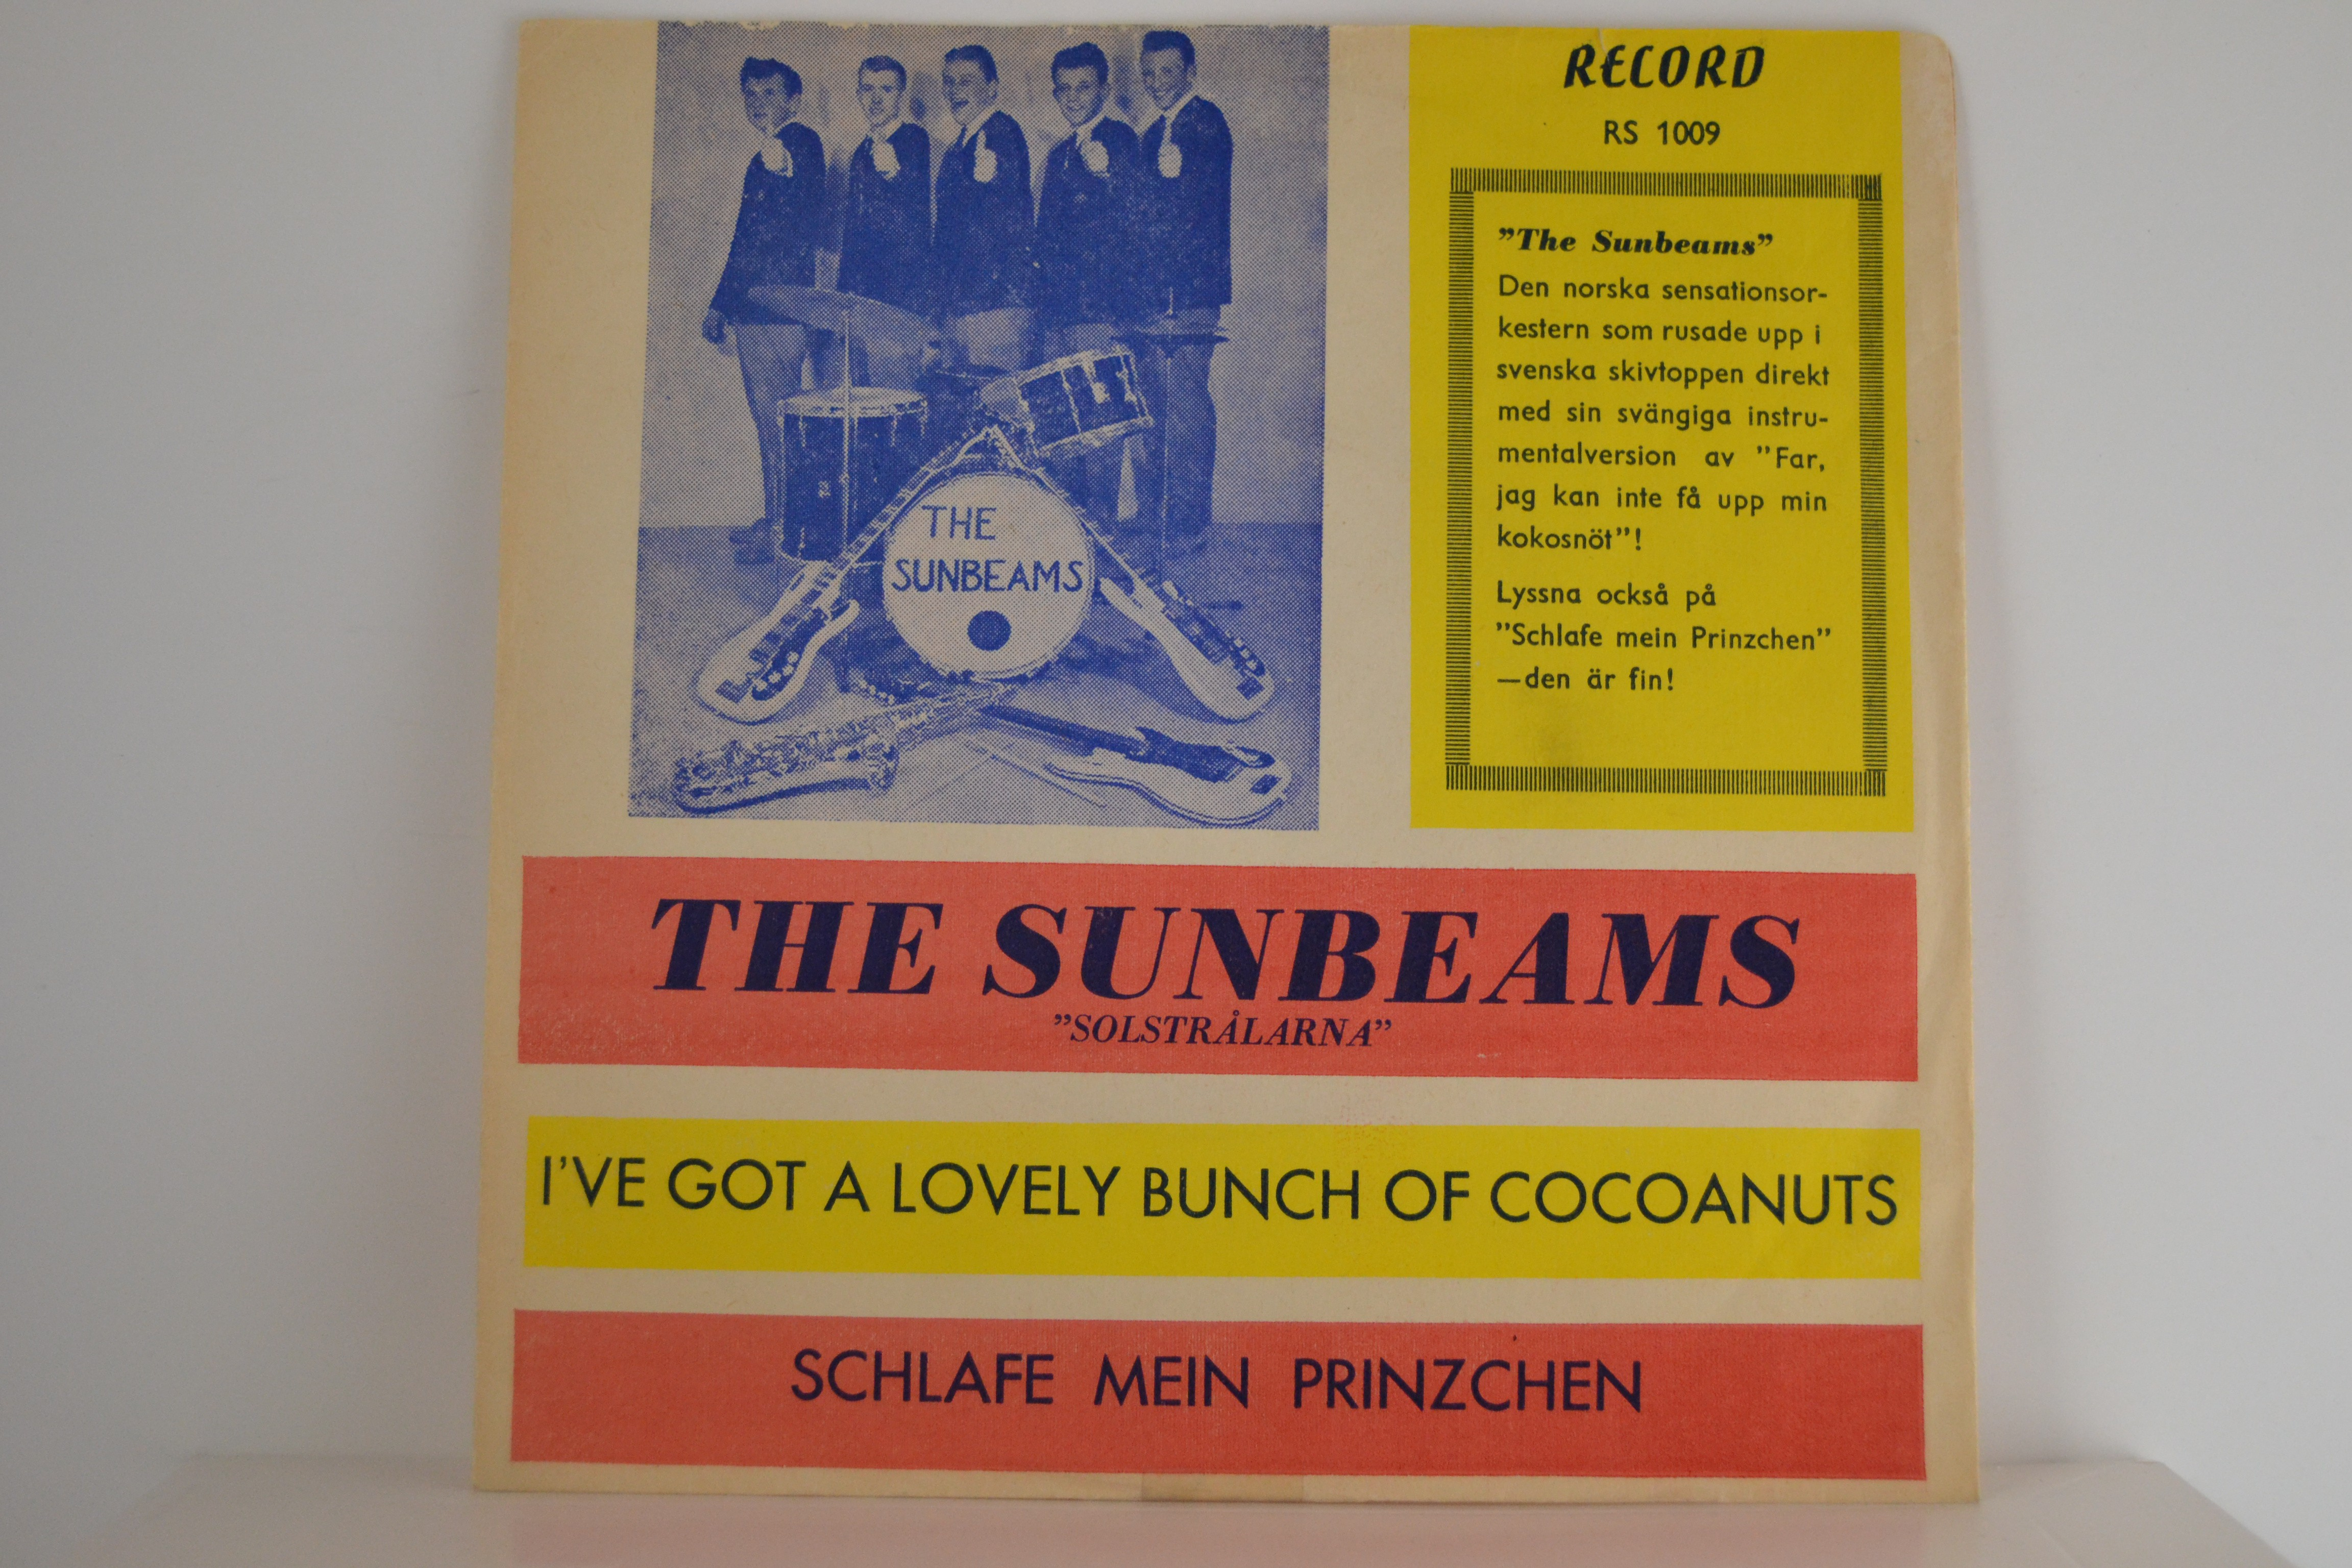 SUNBEAMS : I've got a lovely bunch of cocoanuts / Schlafe mein prinzchen